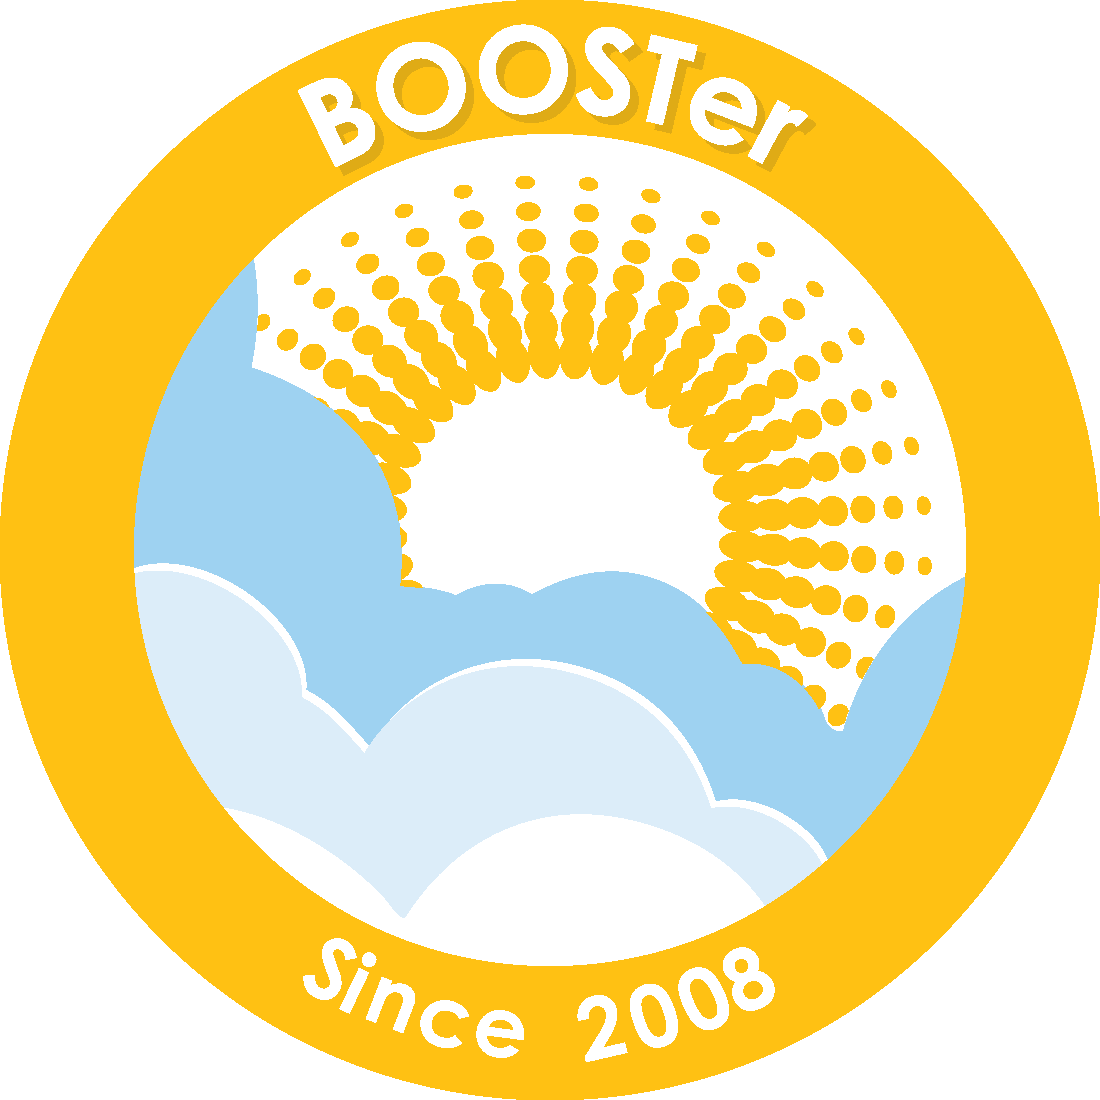 2008 BOOSTer Since badge